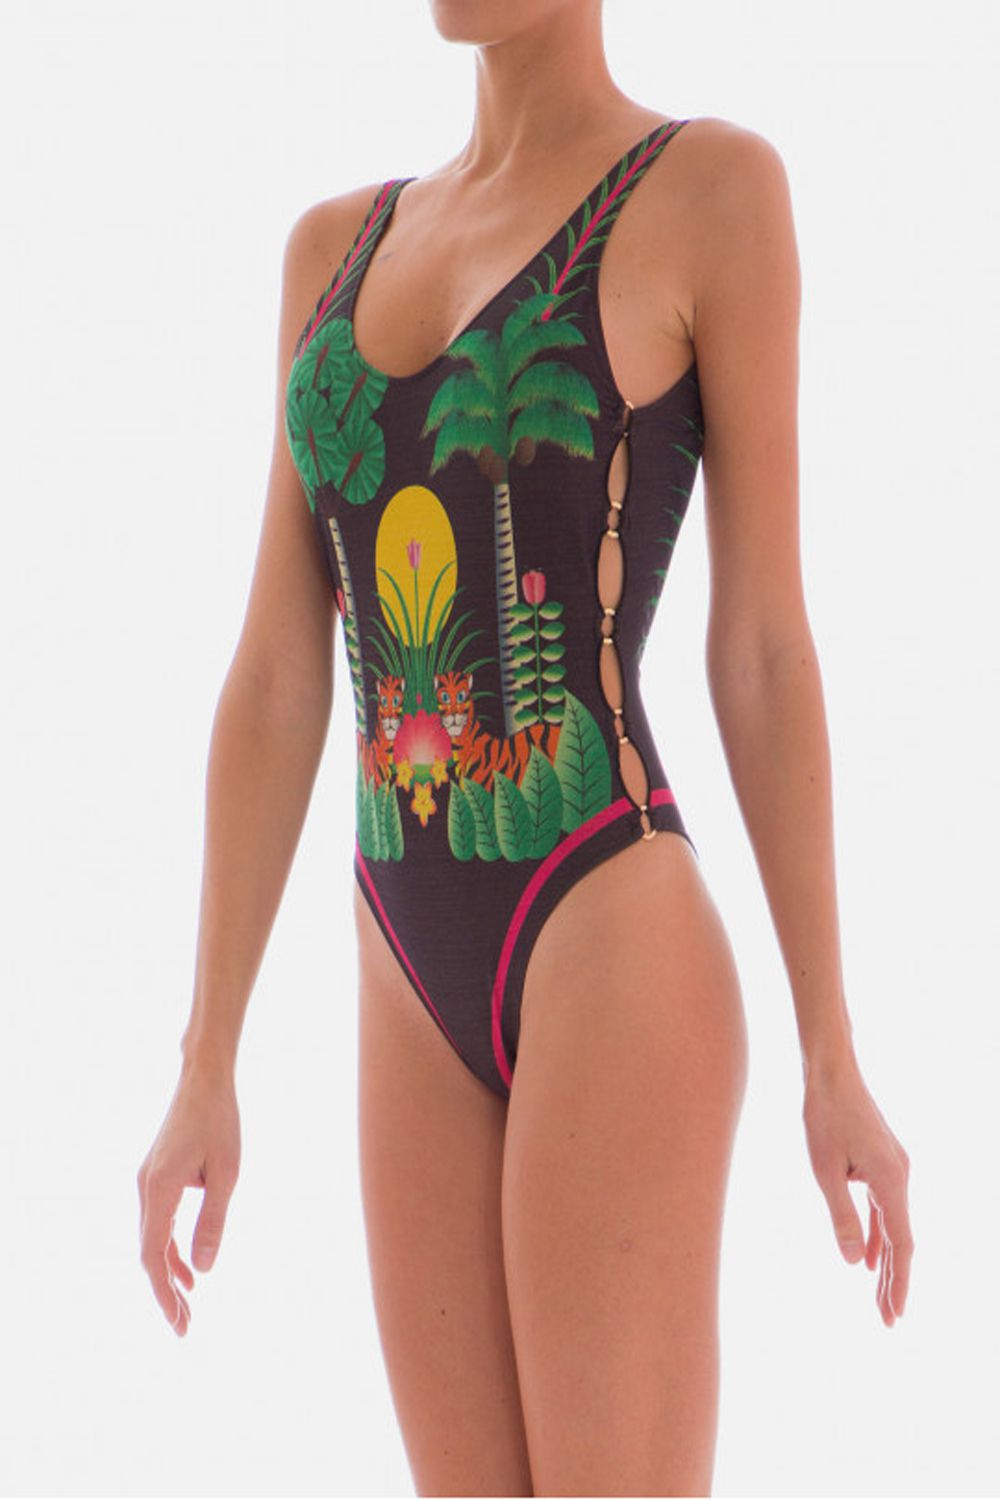 Swimsuit PIN-UP STARS 18P352I-034